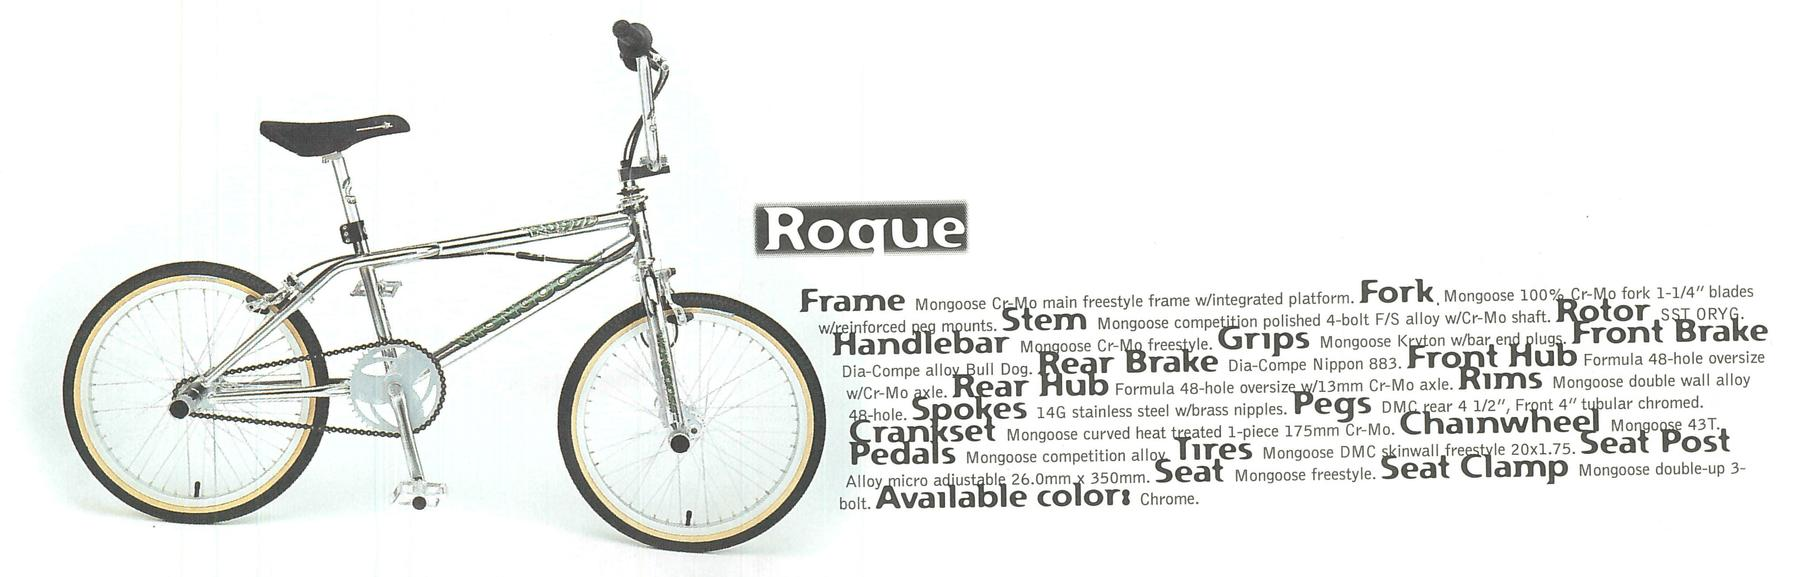 https://bmxmuseum.com/reference-images/1997-mongoose-catalog_rogue_5c0fb7405d_blowup.jpg